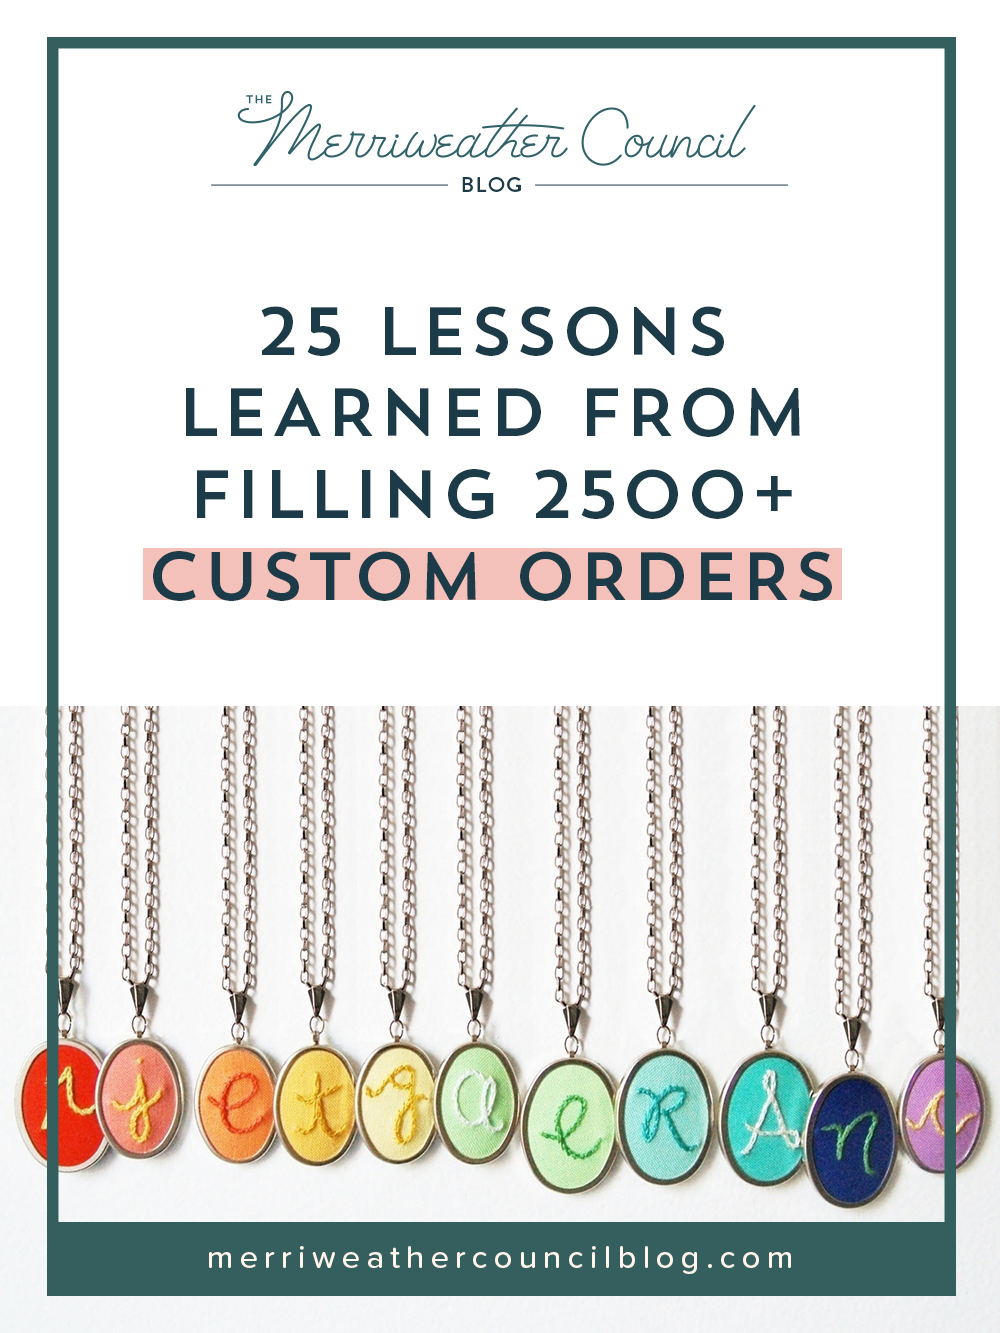 25 Lessons Learned from Filling 2500+ Custom Orders   the merriweather council blog